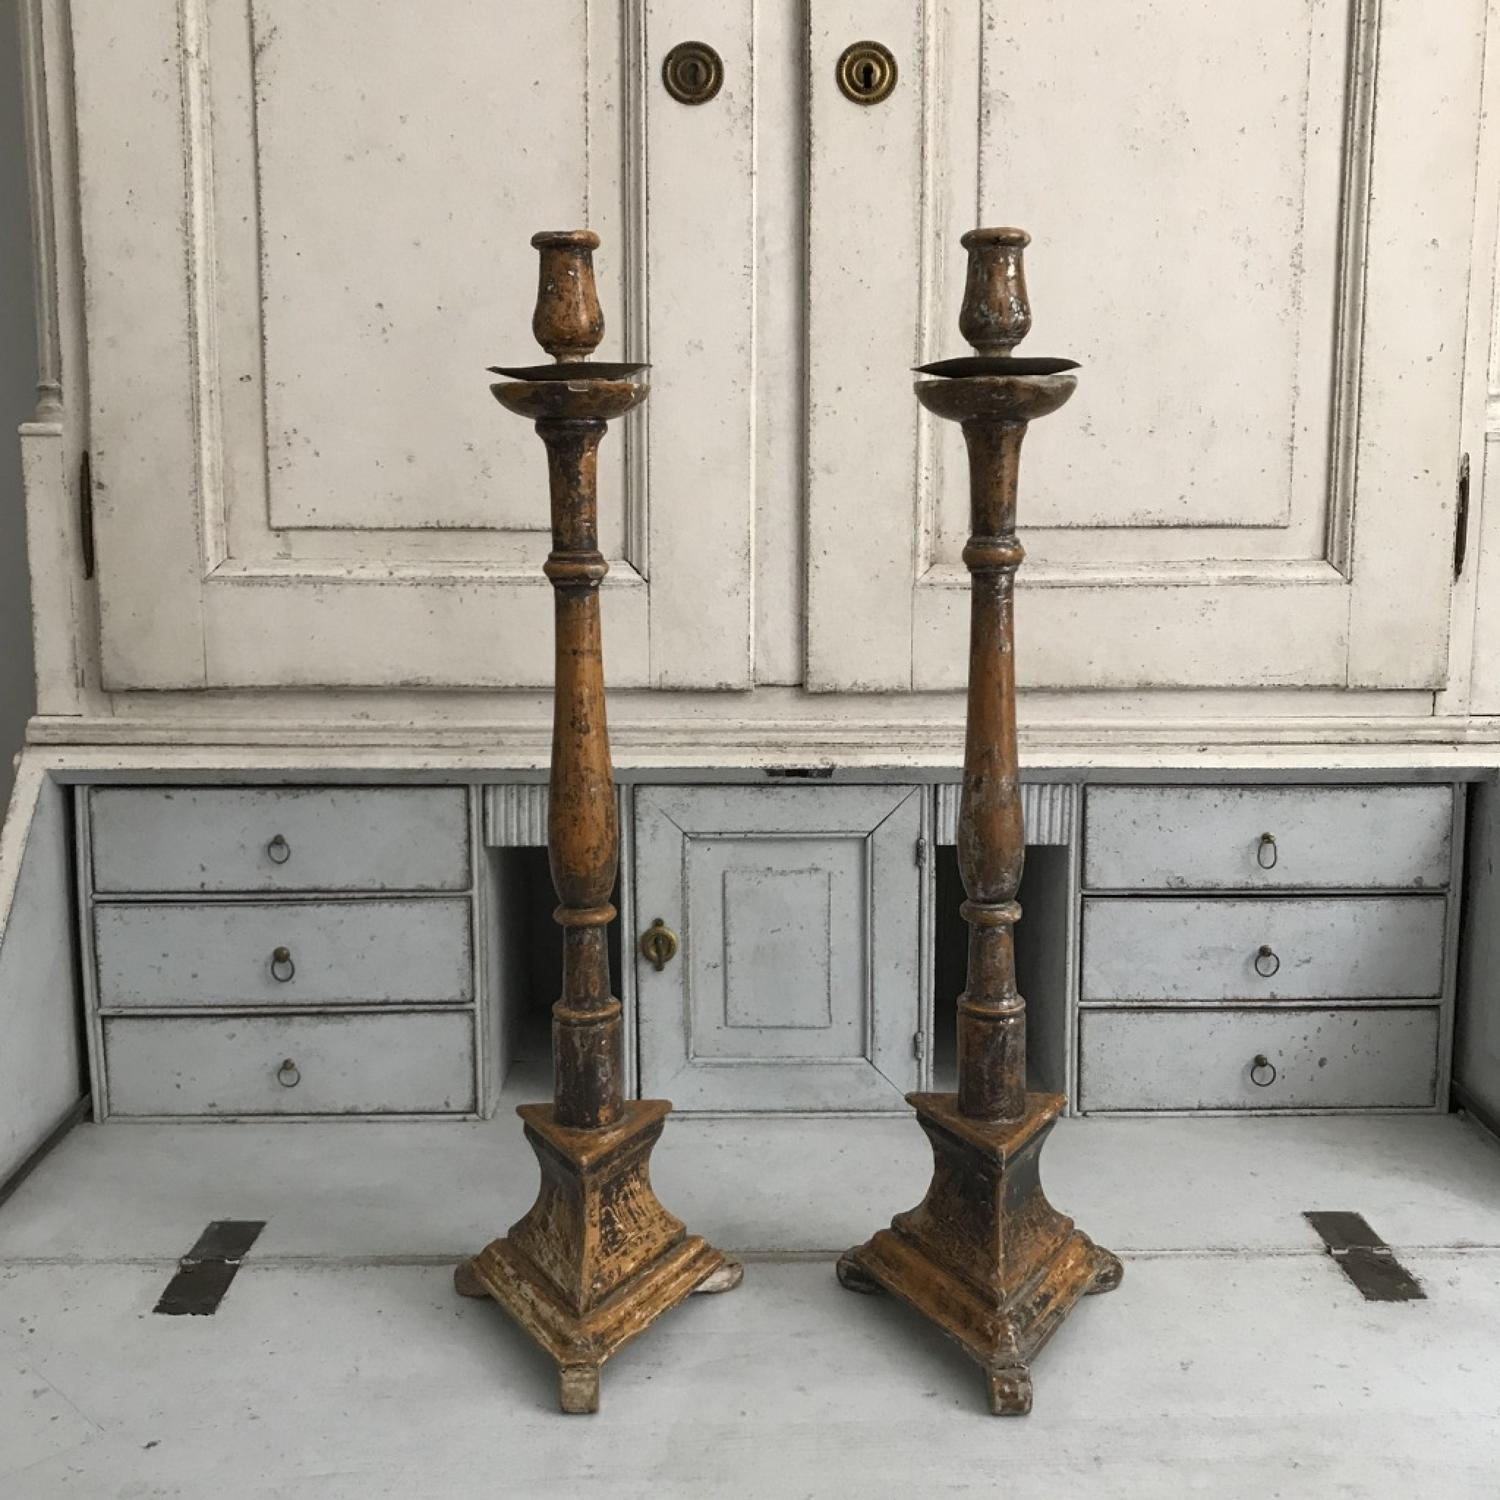 Pair of Spanish Candlesticks, 18th Century